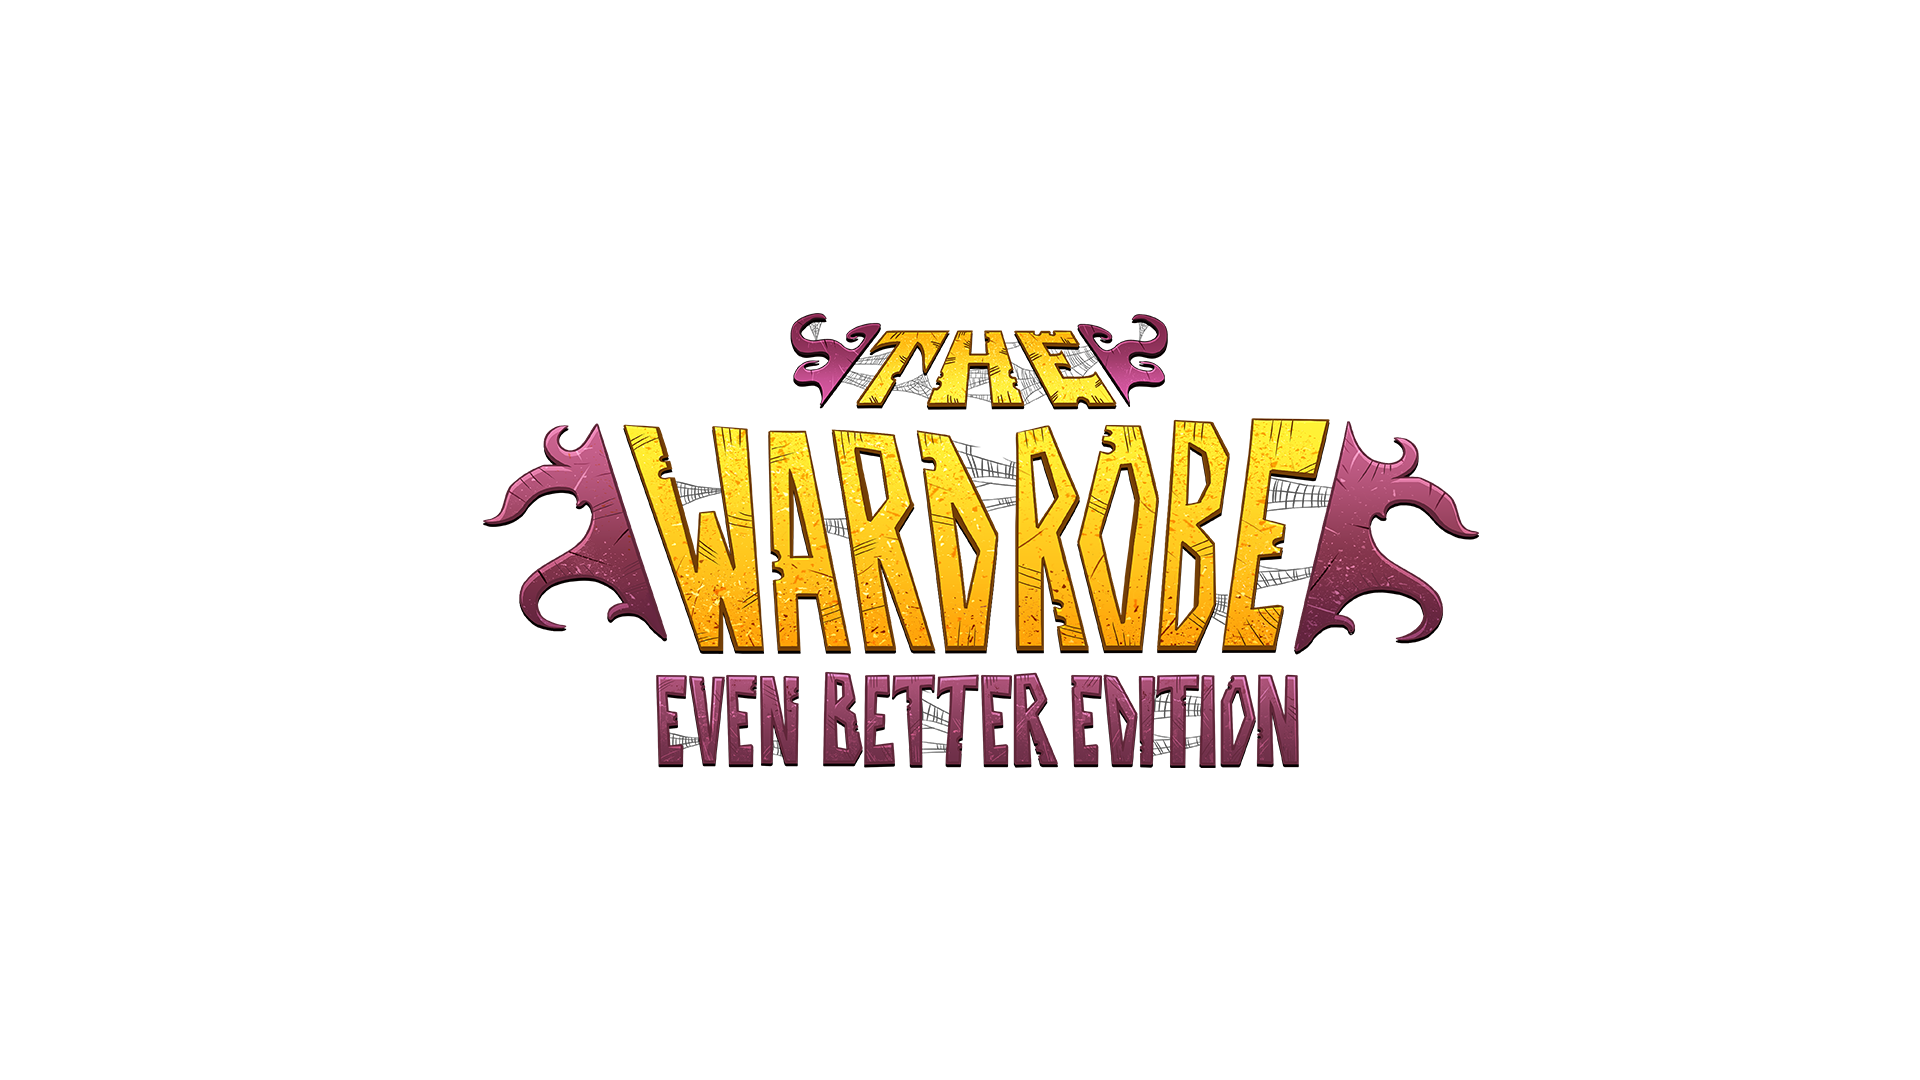 The Wardrobe - Even Better Edition is available on Steam